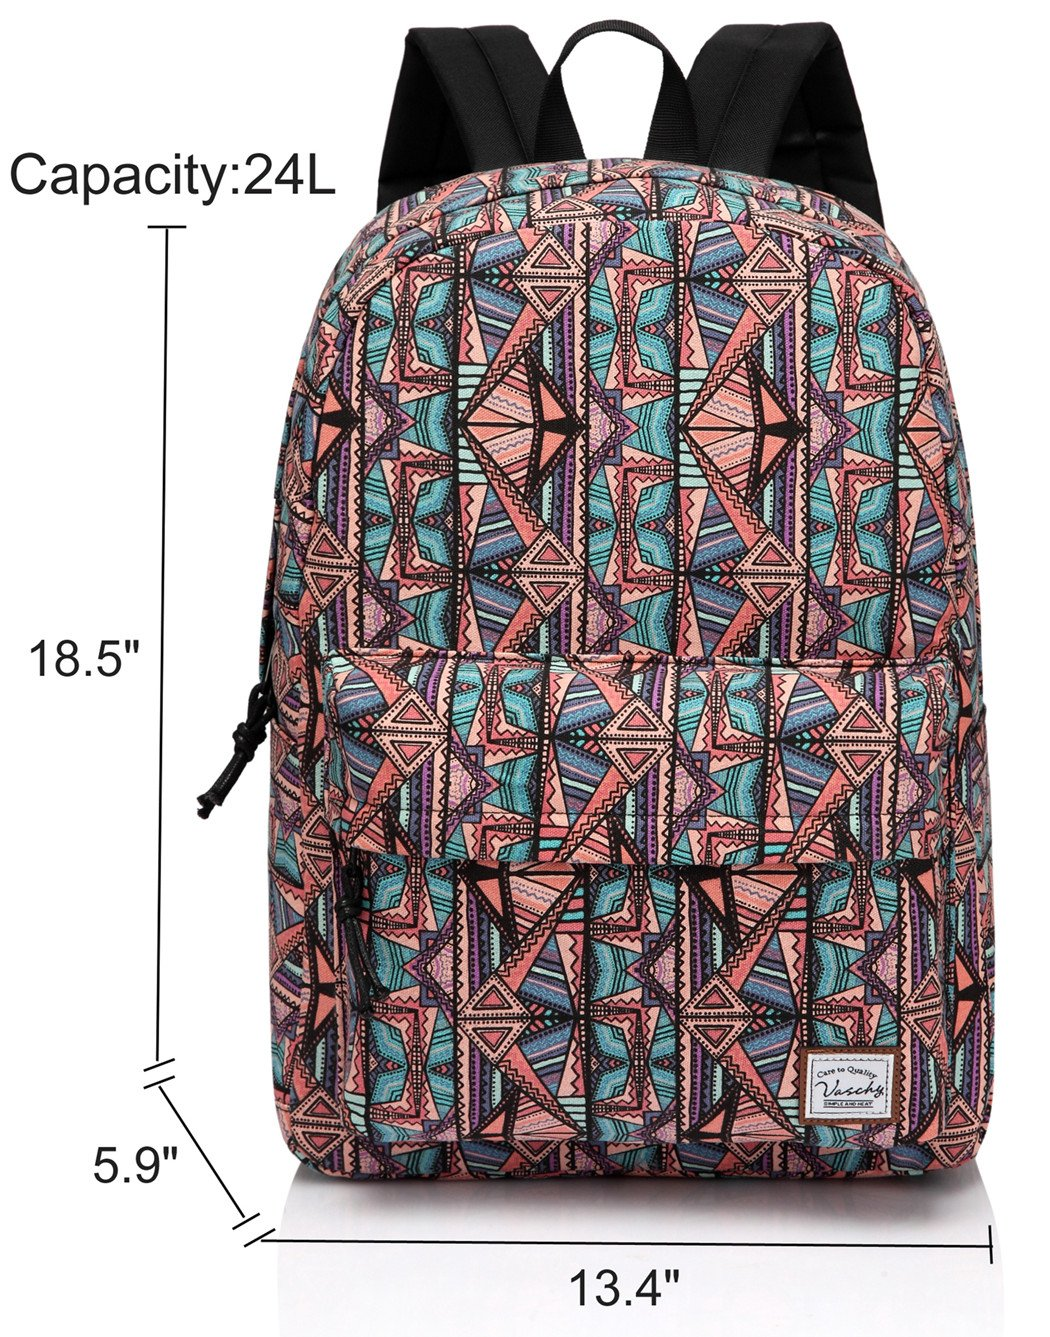 School Backpack for Teen Girls,Fashion Canvas Rucksack BookBag with Padded Laptop Sleeve by Vaschy (Image #2)